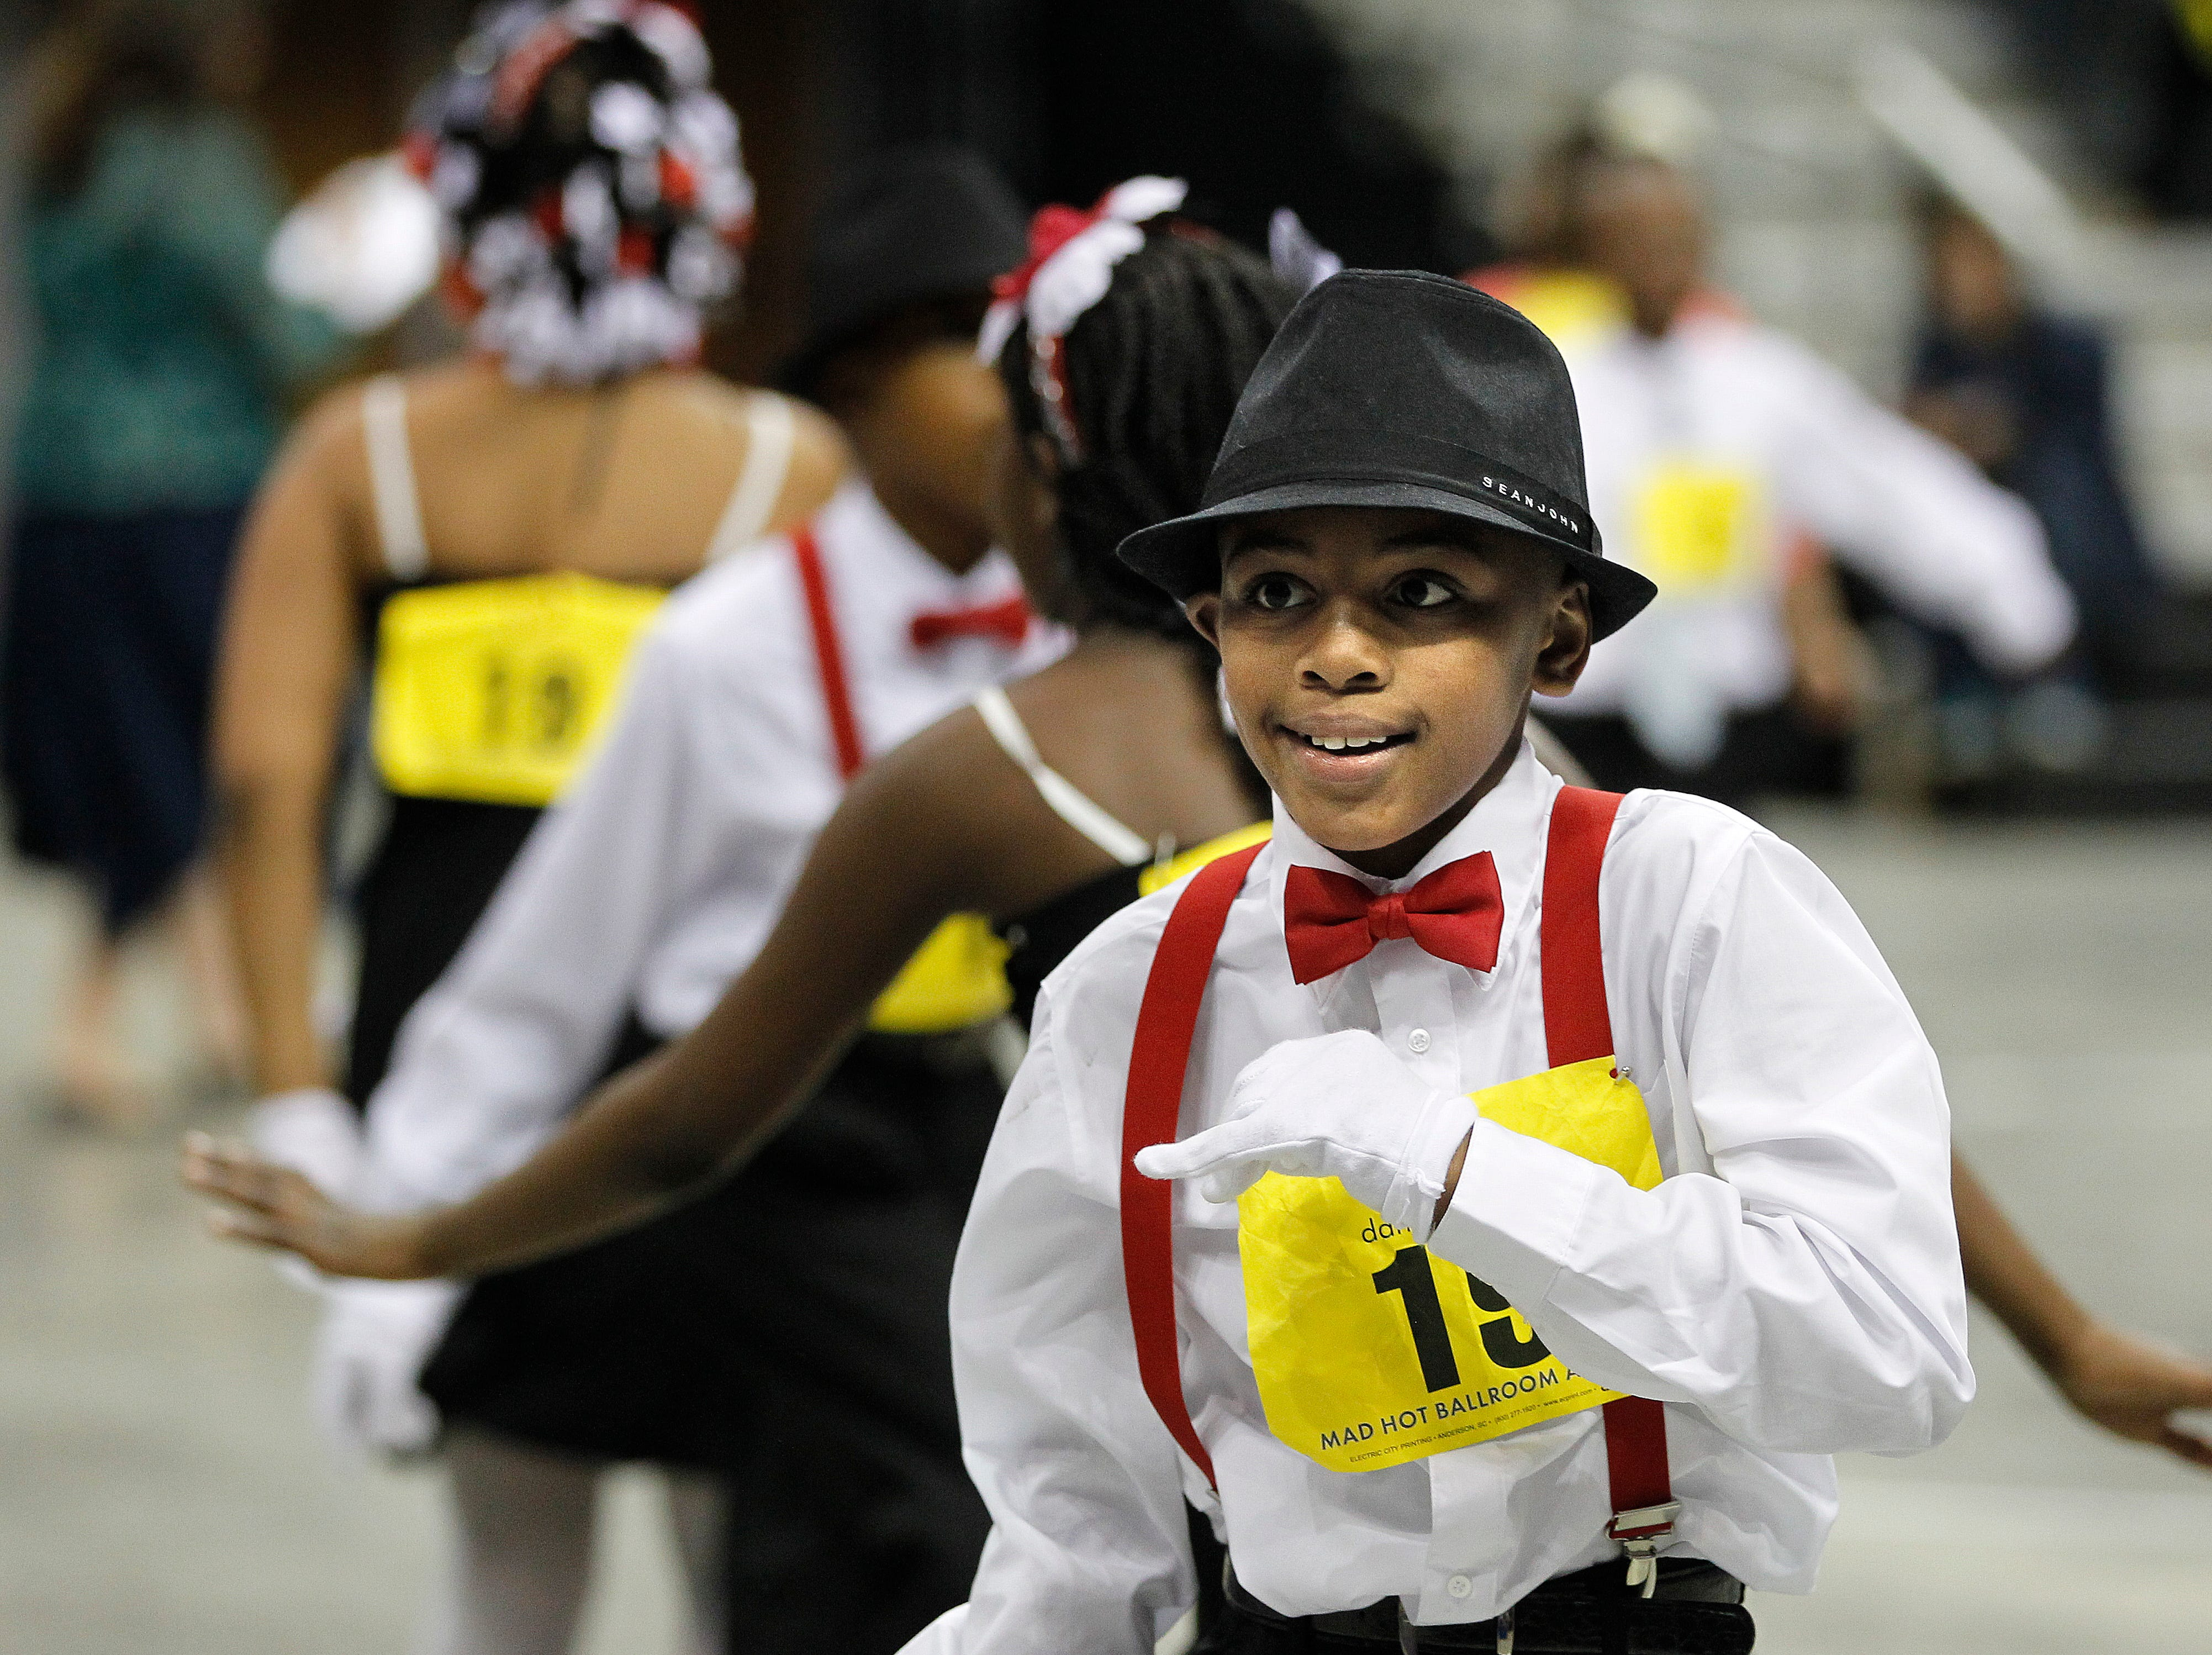 2014: Students from Hopkins Lloyd Community School dance during the annual Mad Hot Ballroom and Tap competition at the BMO Harris Bradley Center.